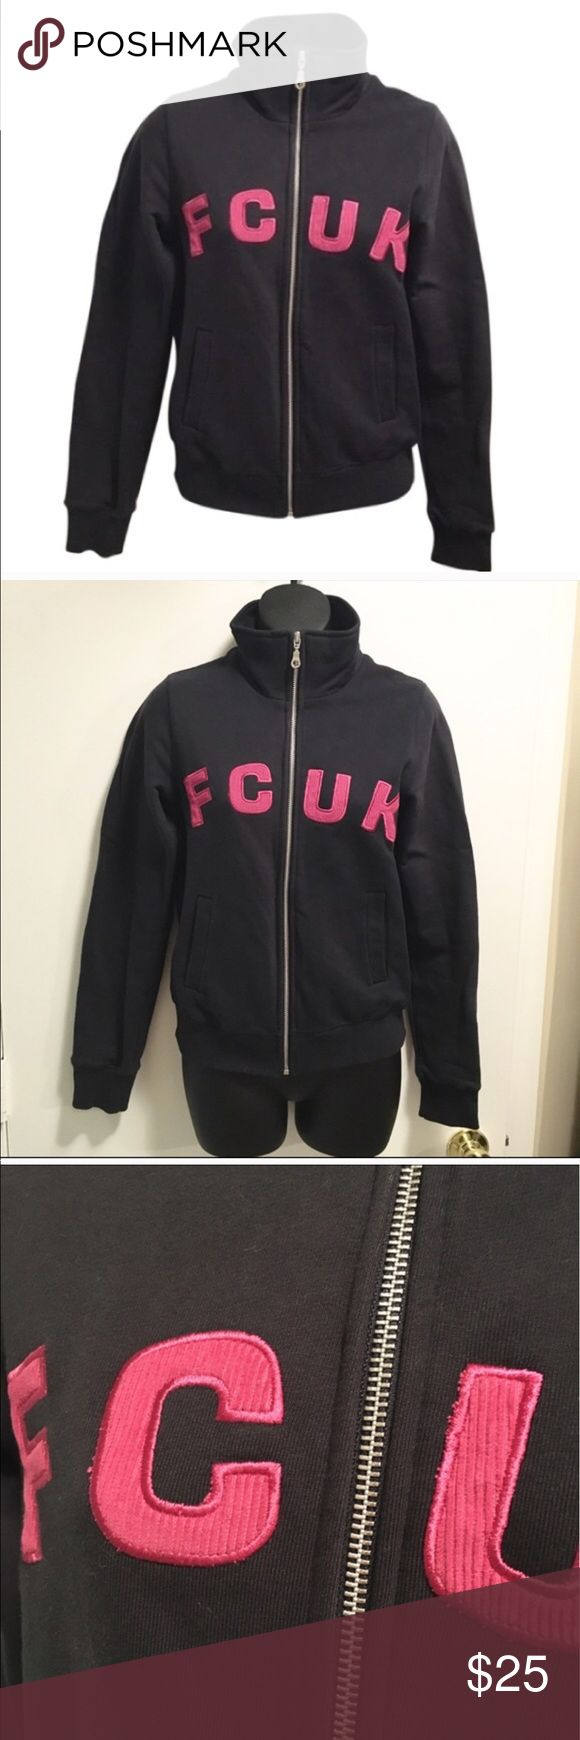 FCUK French Connection Zip Fleece Track Jacket FCUK Jeans by French Connection. Purchased in NYC years ago, no longer sold in stores. May have worn it once. Perfect condition and no signs of wear. Dark gray with hot pink letters. 100% cotton. French Connection Tops Sweatshirts & Hoodies